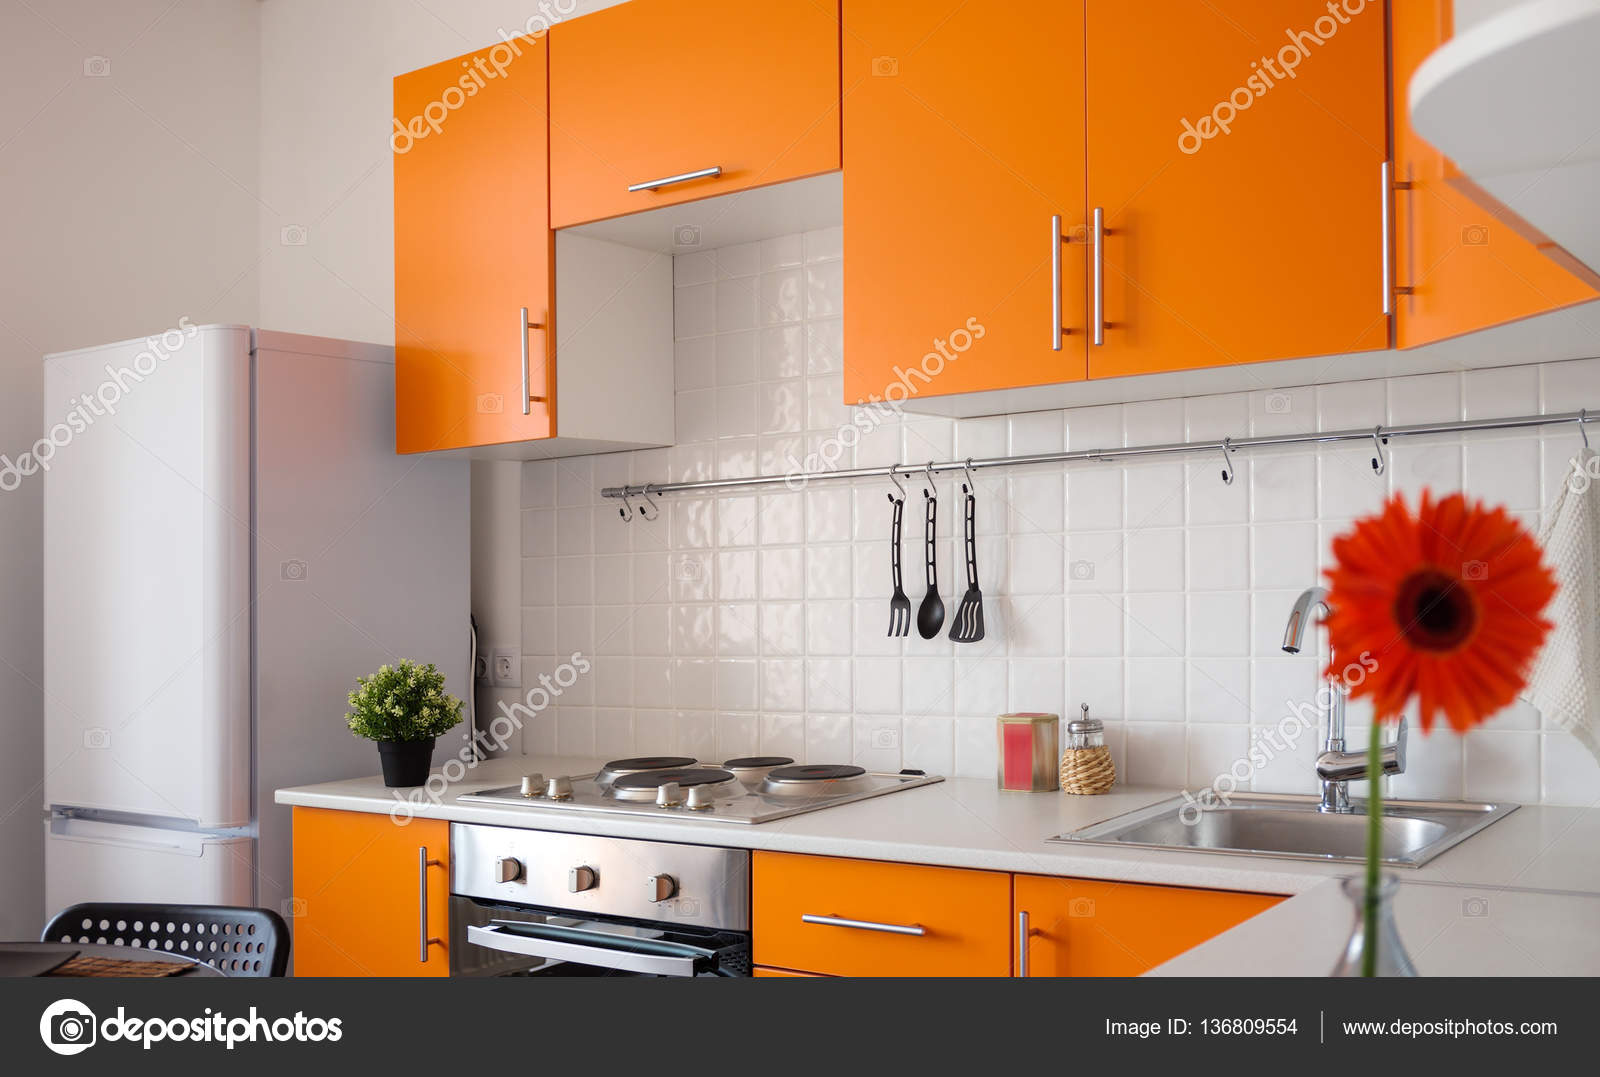 Orange Küche Moderne Orange Küche Stockfoto Wastesoul 136809554